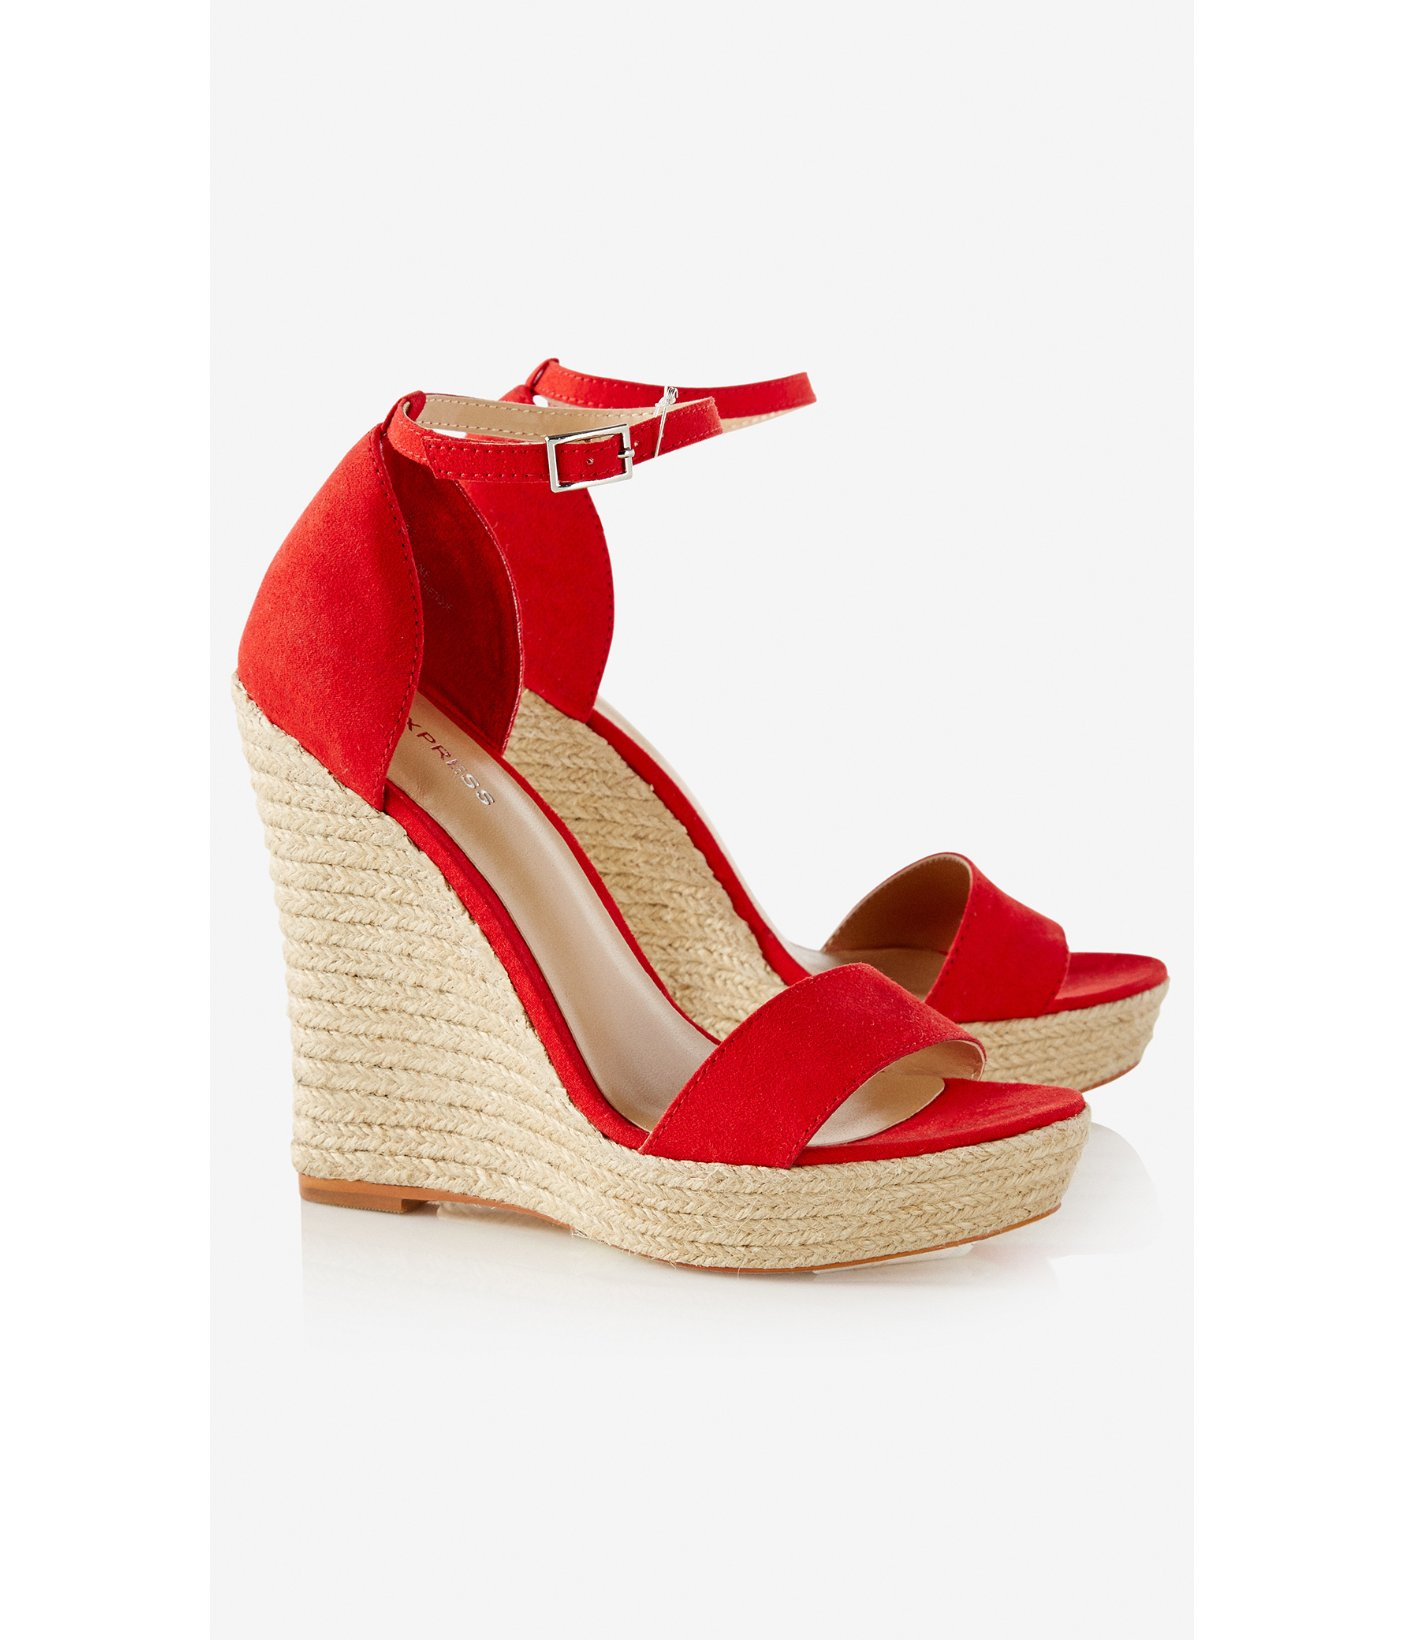 c1c1c75f746 Lyst - Express Espadrille Wedge Sandal in Red